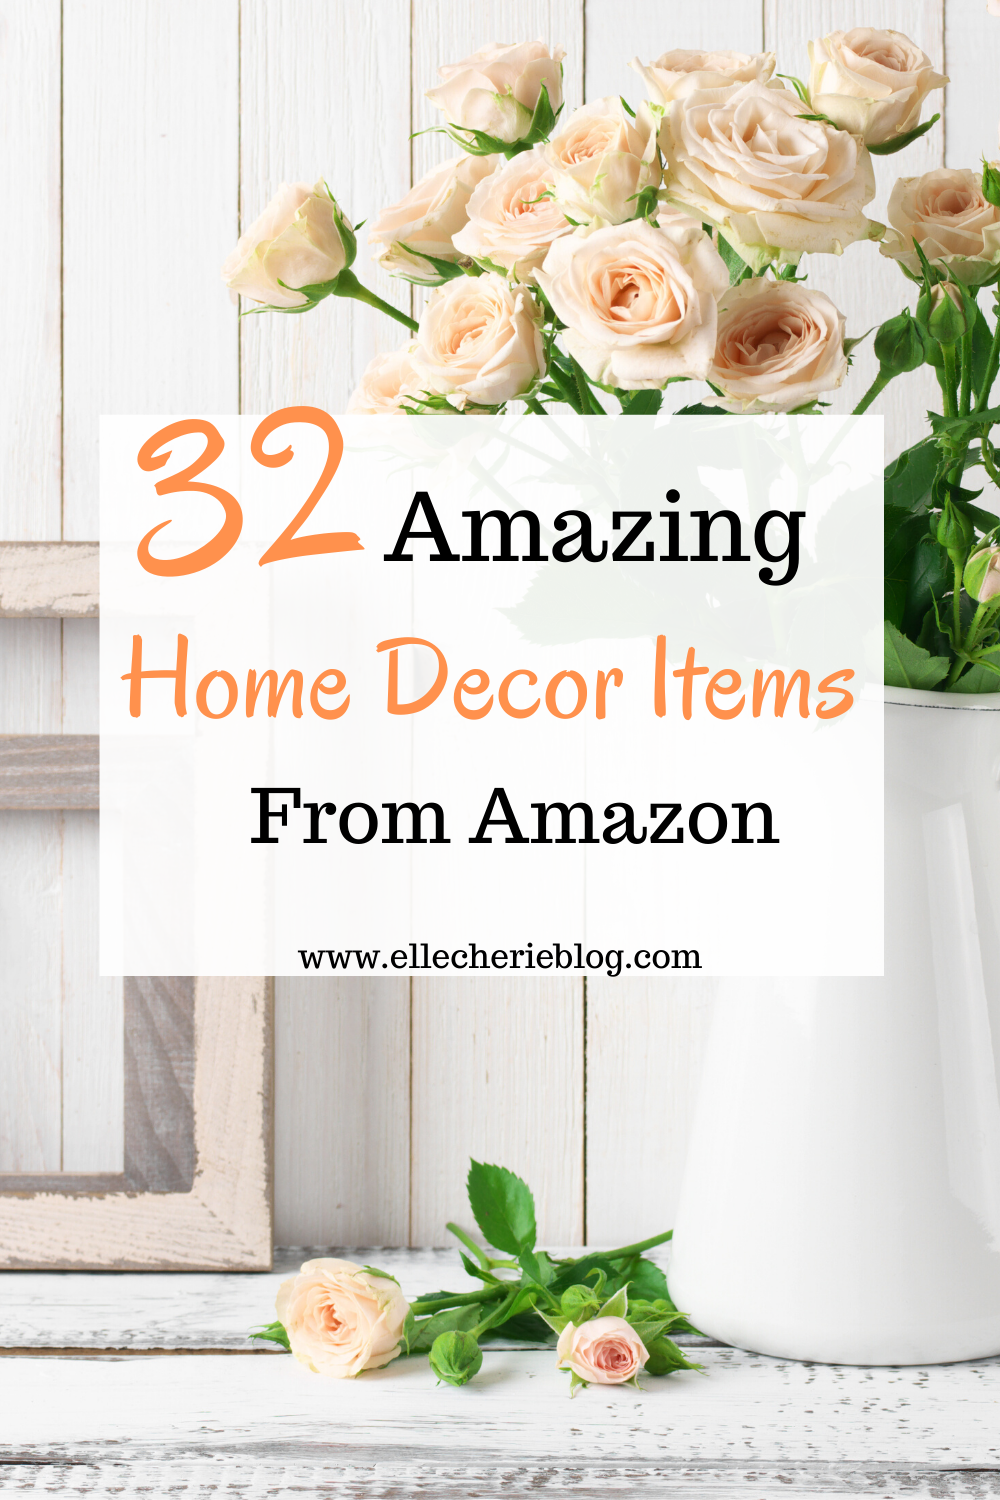 Are you looking to refresh your home with some new decor items? Need some decor ideas to make your bedroom, living room or kitchen pop! Click now to see our round up list of 32 amazing home decor ideas. #homedecor #decor #decorideas #decoration